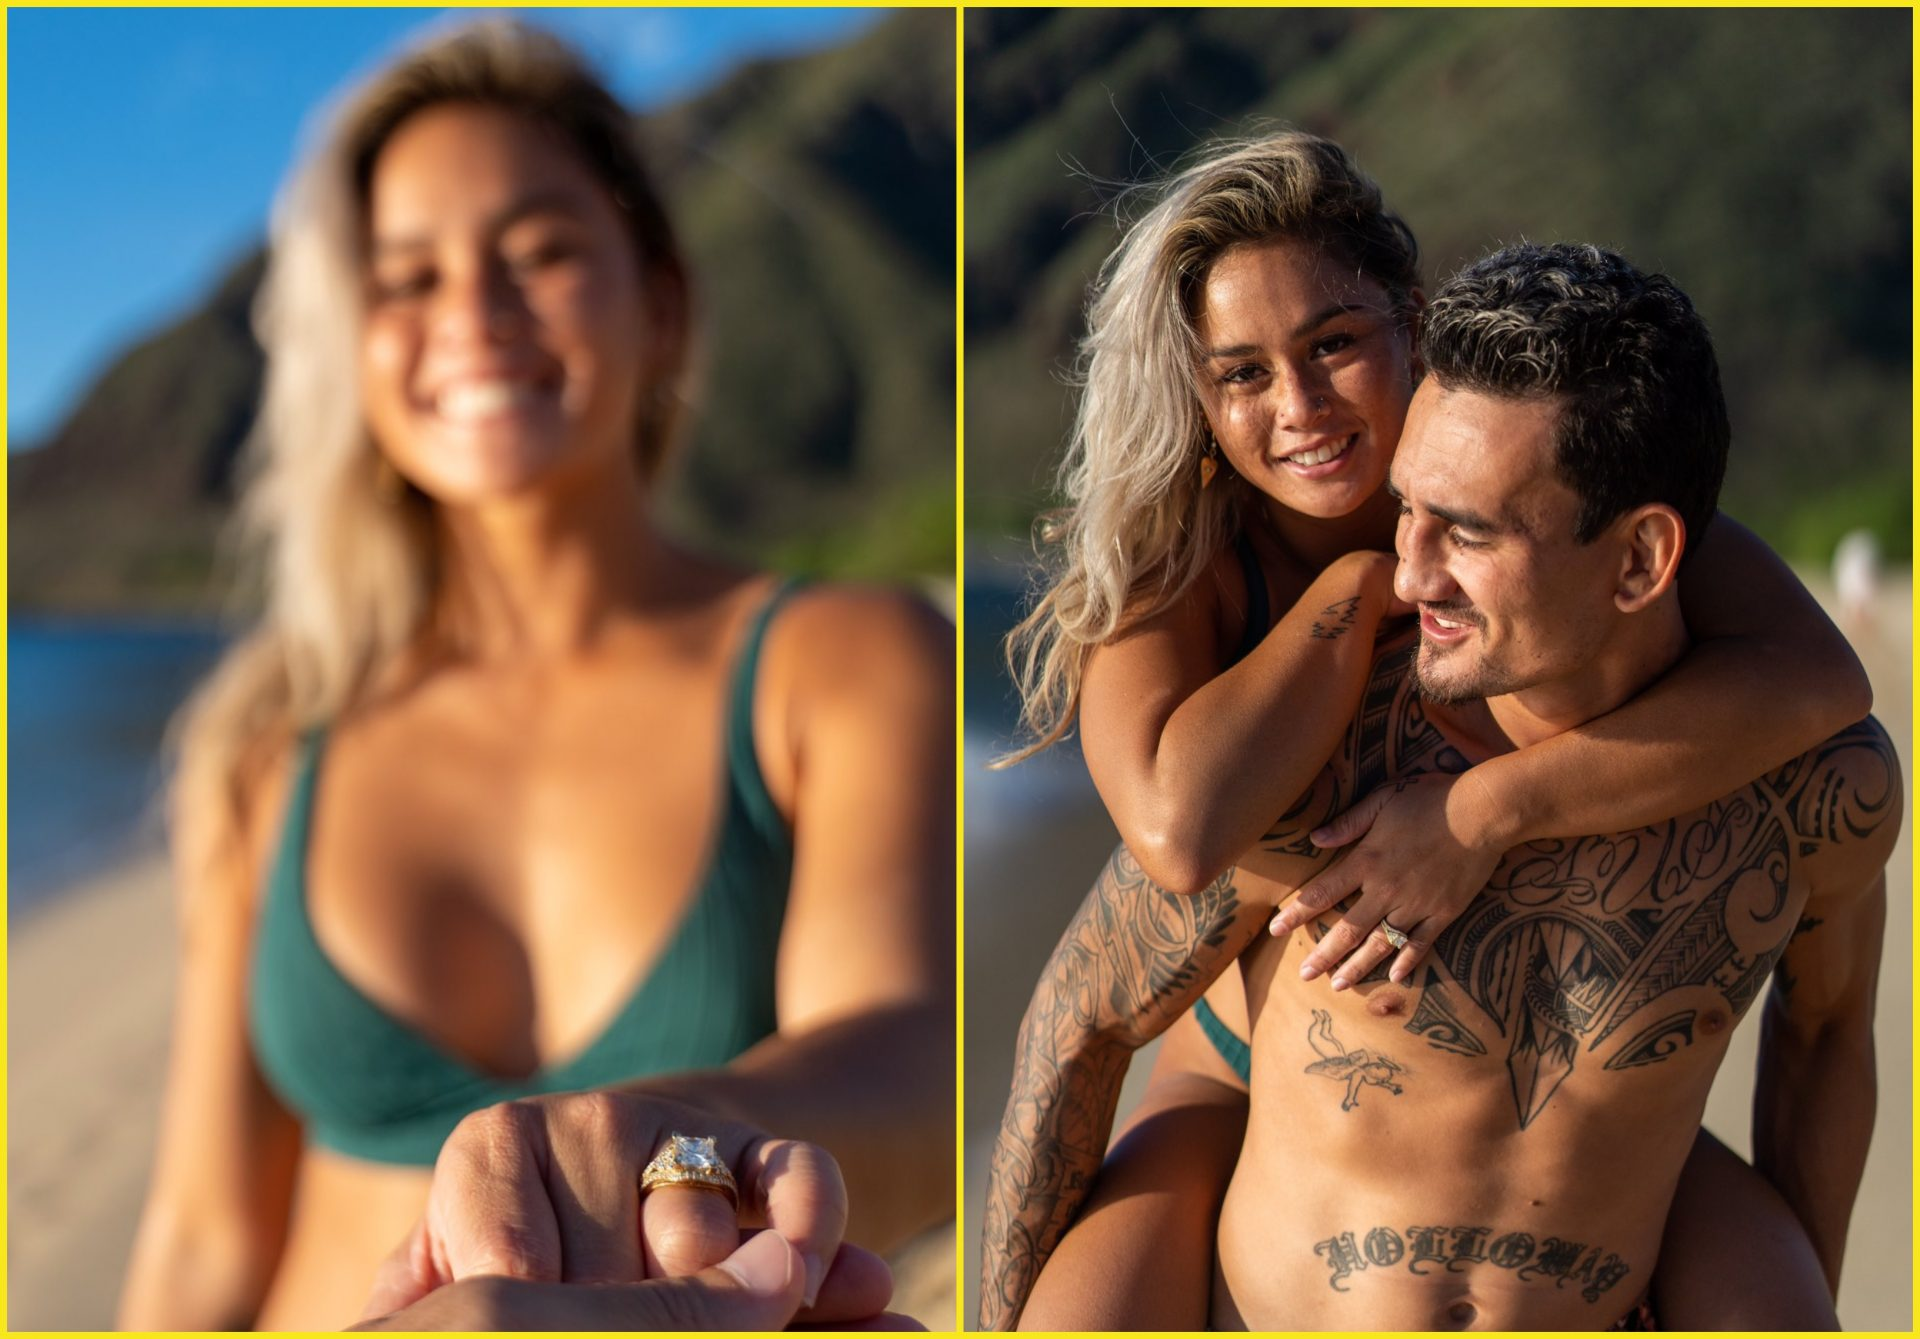 Max Holloway shares photos of his engagement with Pro Surfer Alessa Quizon - Holloway